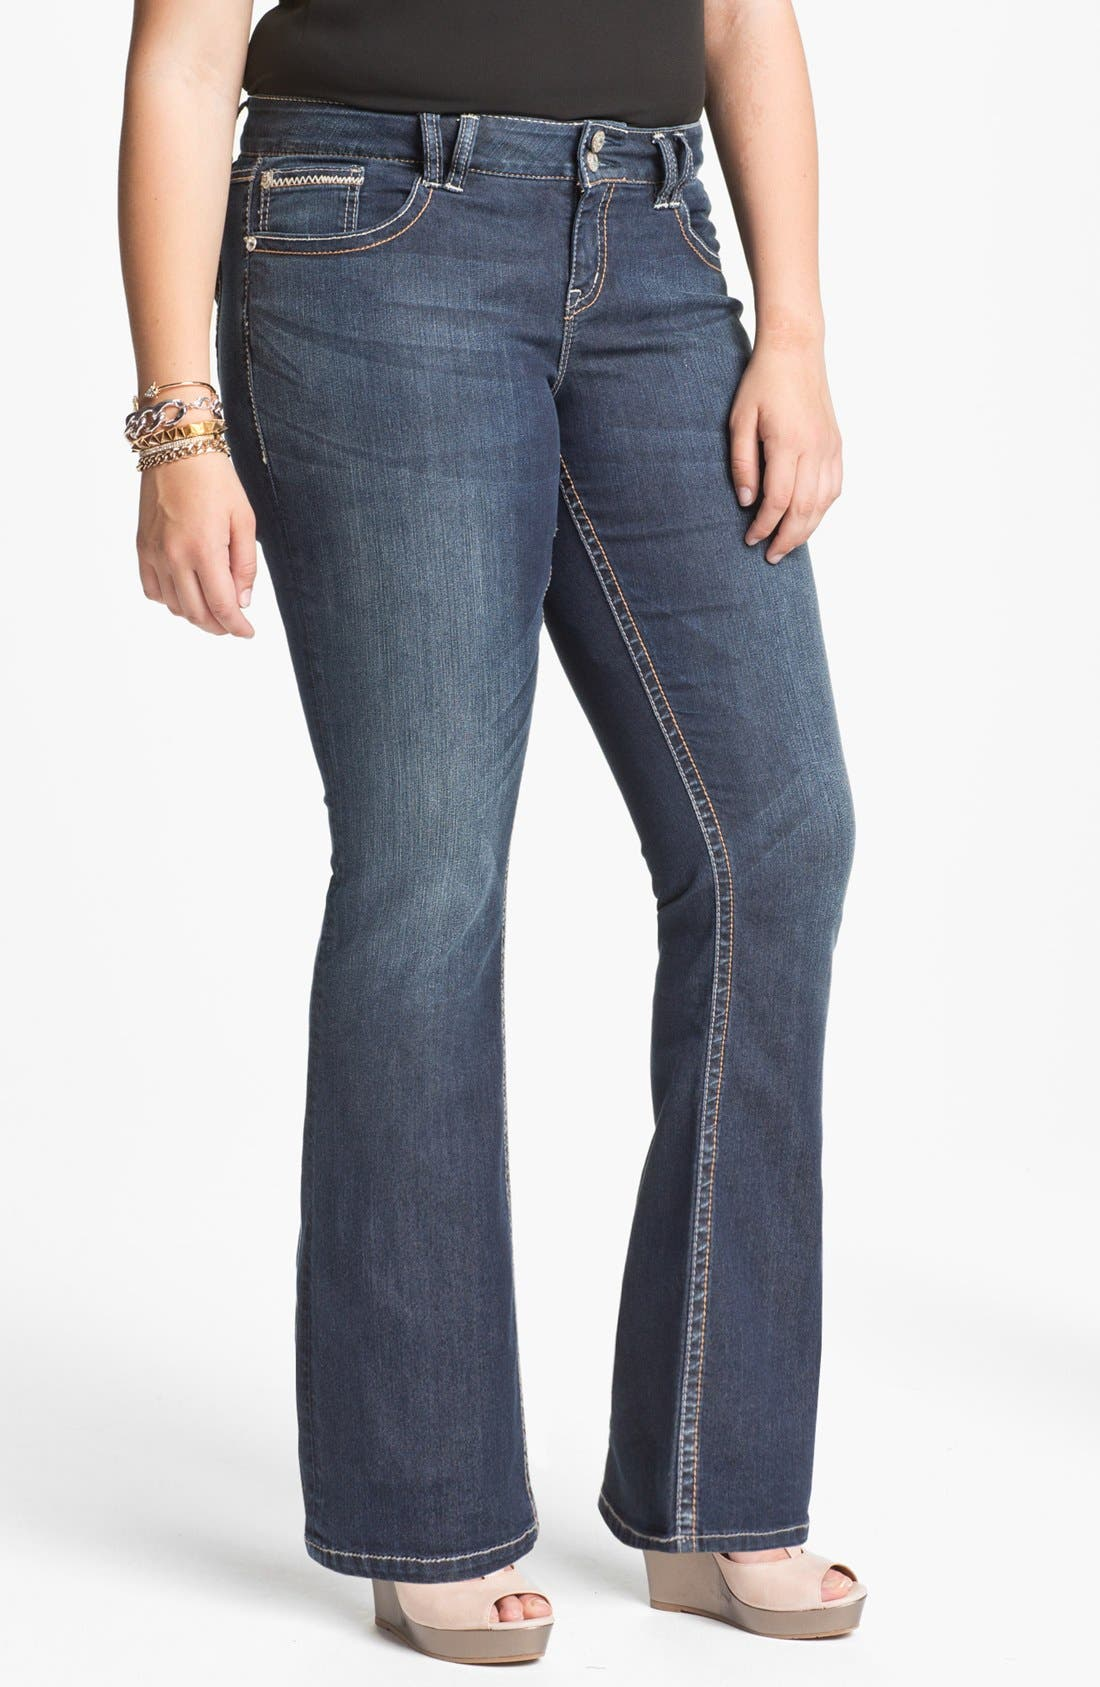 Alternate Image 1 Selected - Silver Jeans Co. 'Dawson' Bootcut Jeans (Juniors Plus)